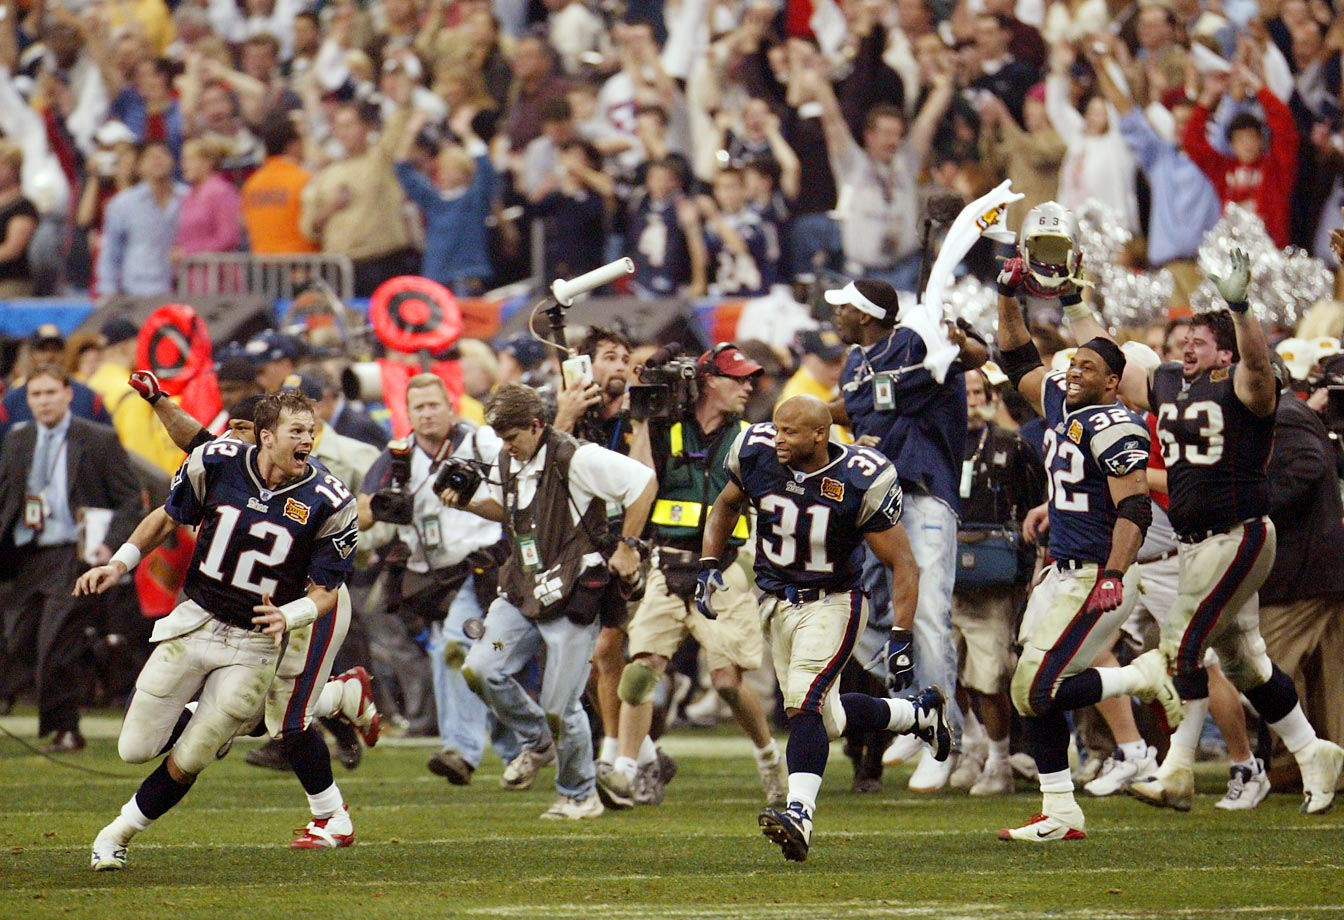 Tom Brady lead the Patriots in celebration at the conclusion of their victory over Carolina. The game was decided on a 41-yard field goal by Adam Vinatieri with four seconds remaining.